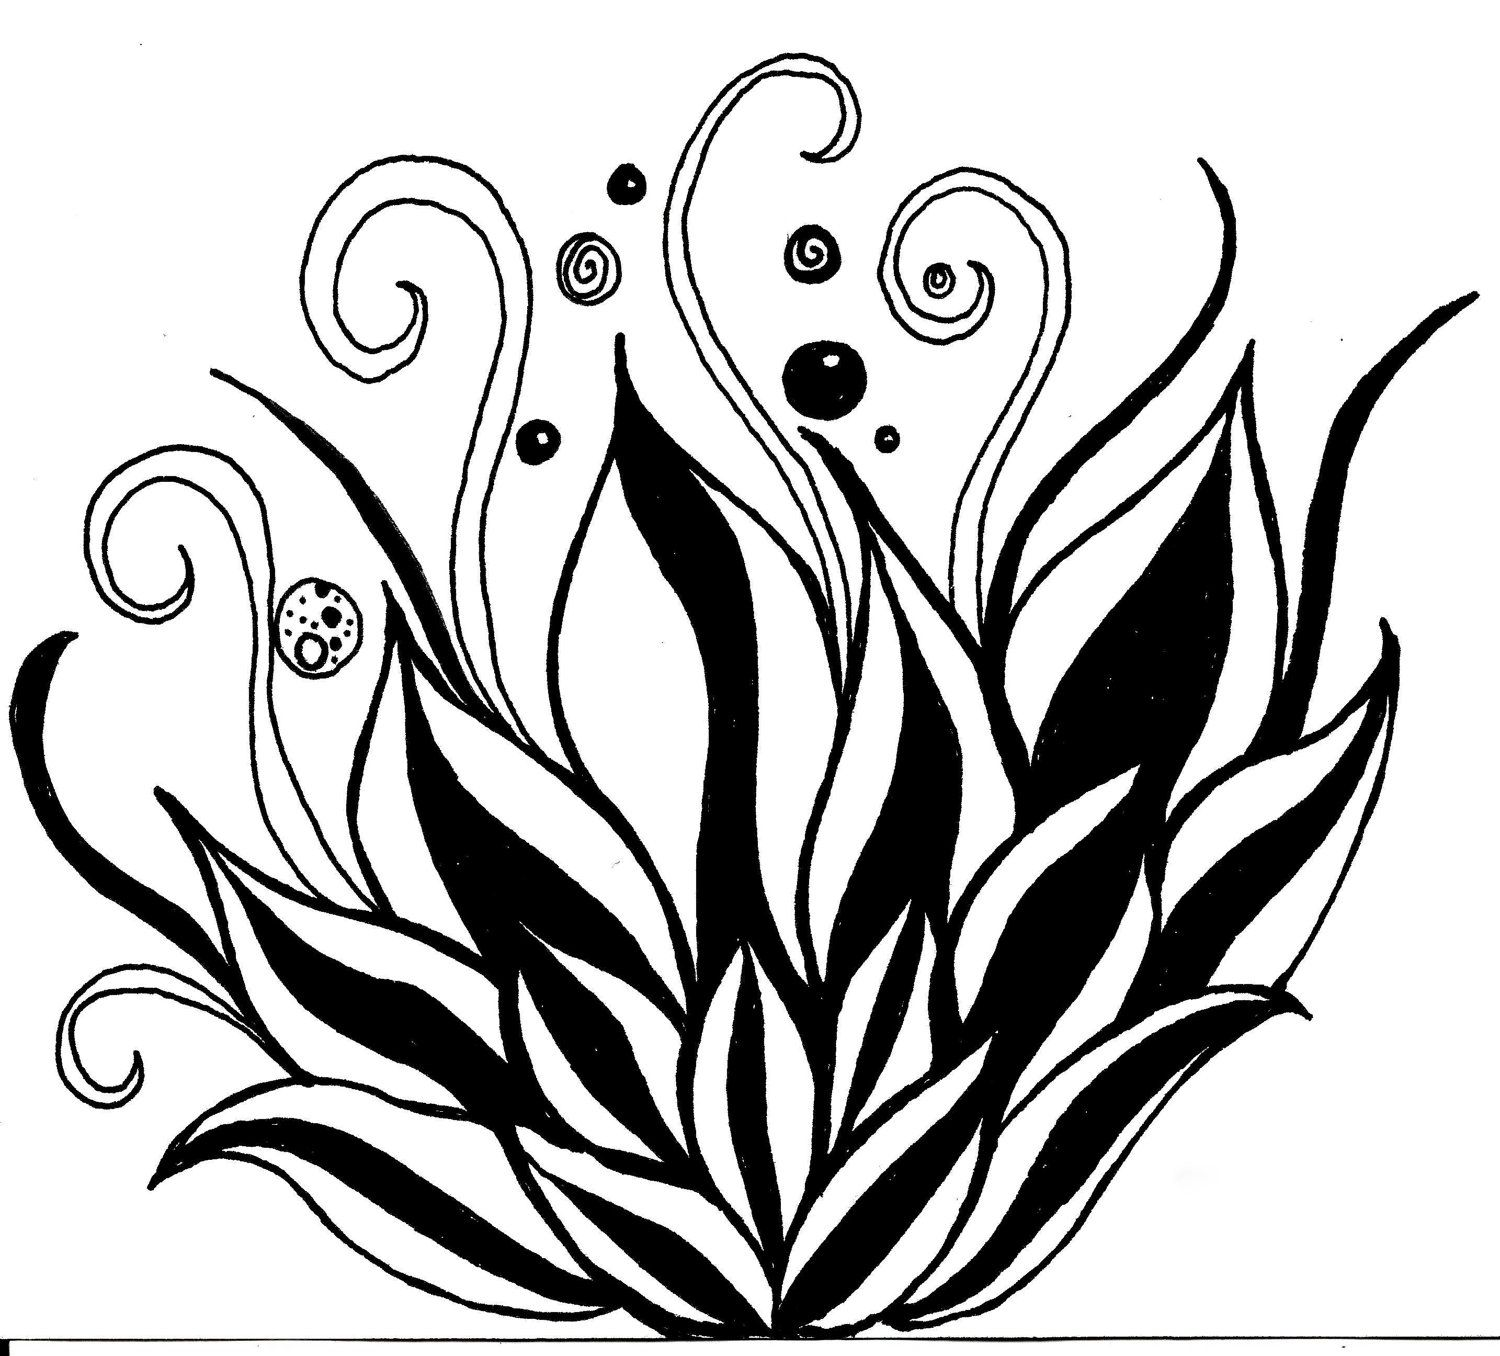 1500x1356 Lotus Flower Drawing Henna Myflowerreviews My Inspiration